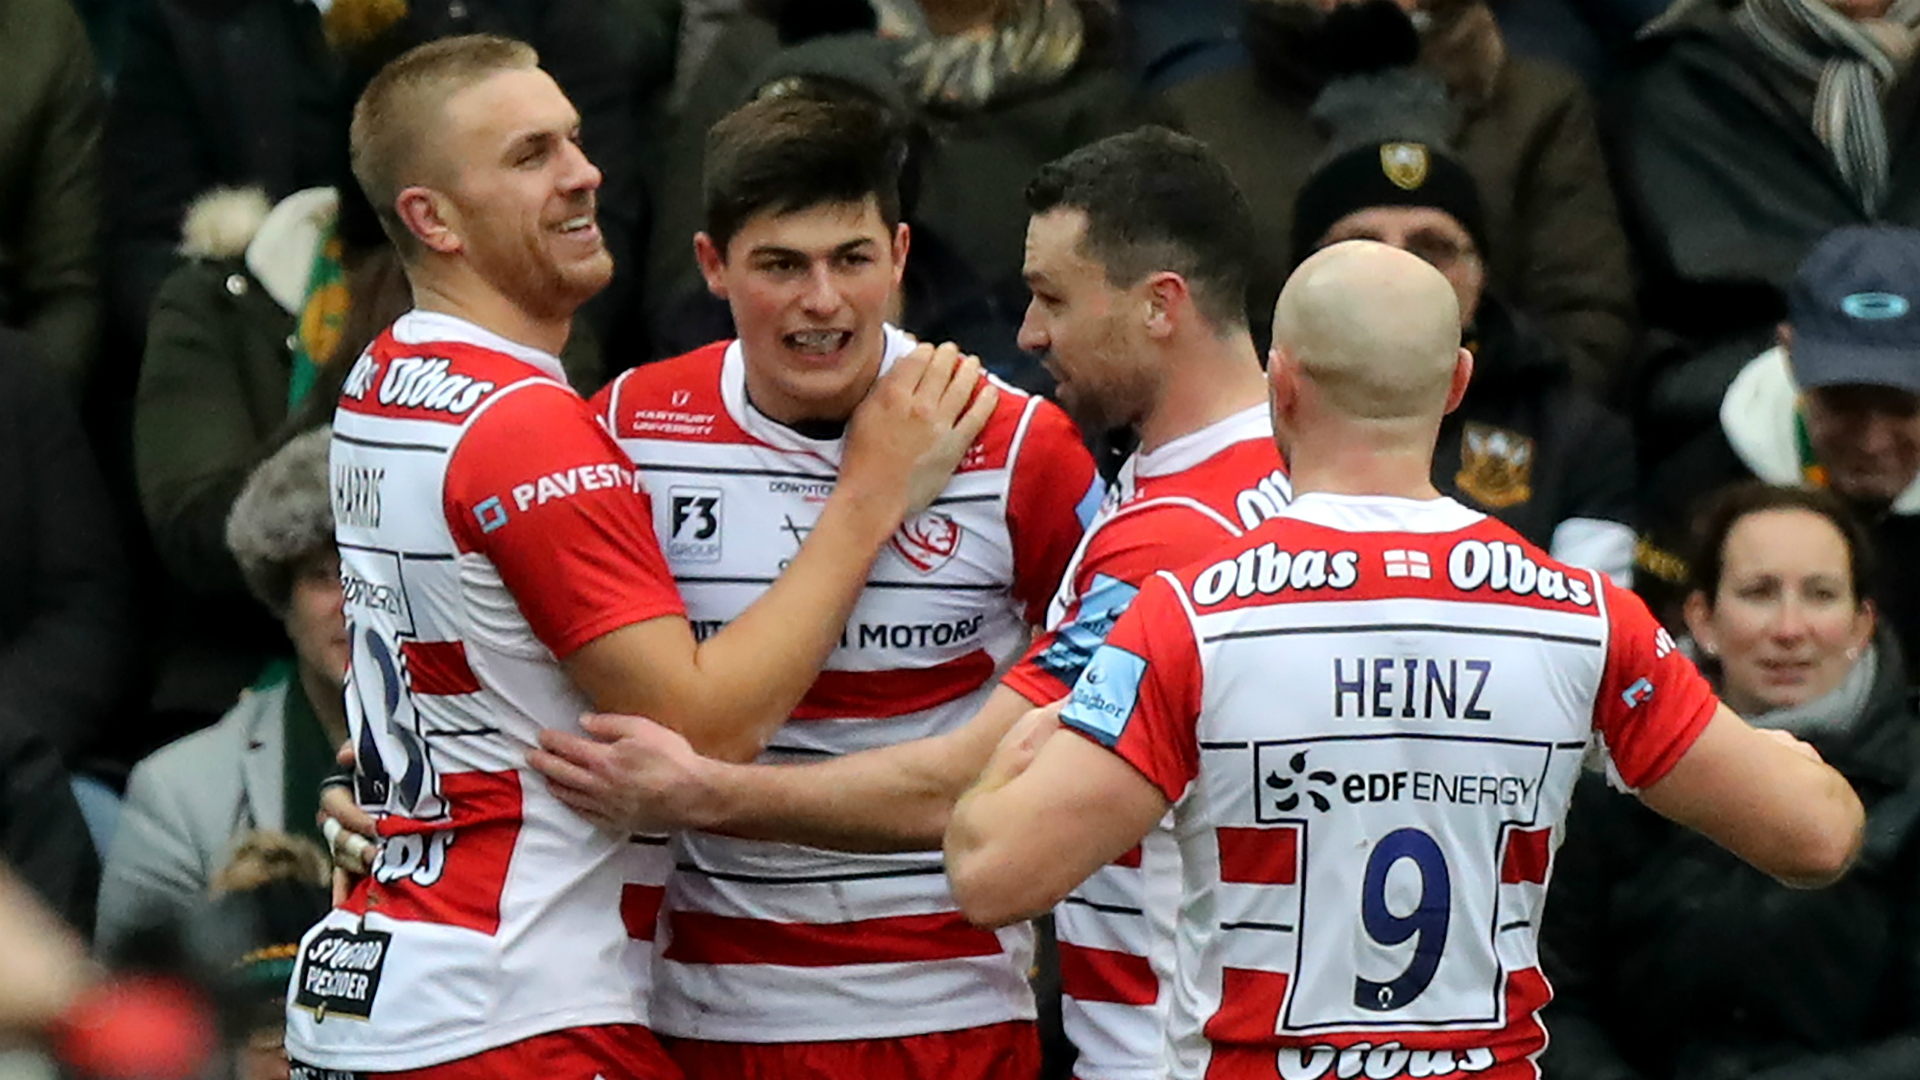 Saints go top despite Rees-Zammit hat-trick, Tigers fight back for thrilling Quins draw